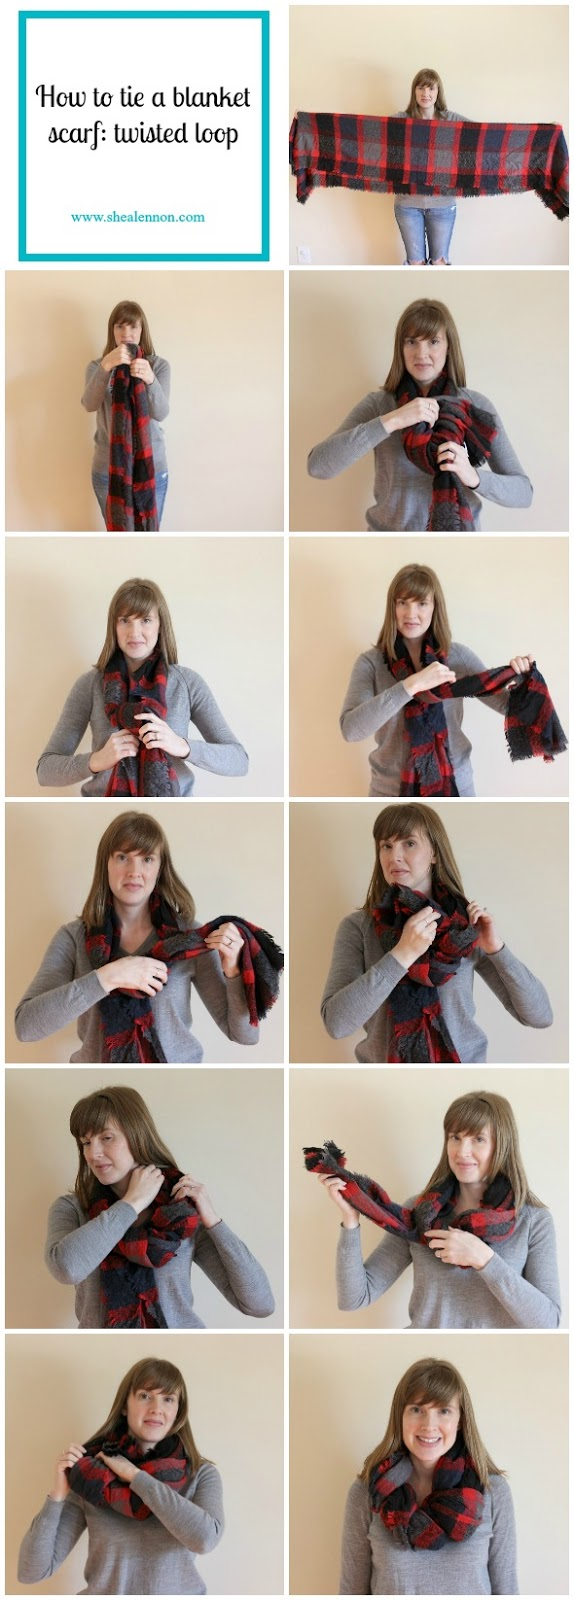 How to tie a blanket scarf in a twisted loop. | www.shealennon.com